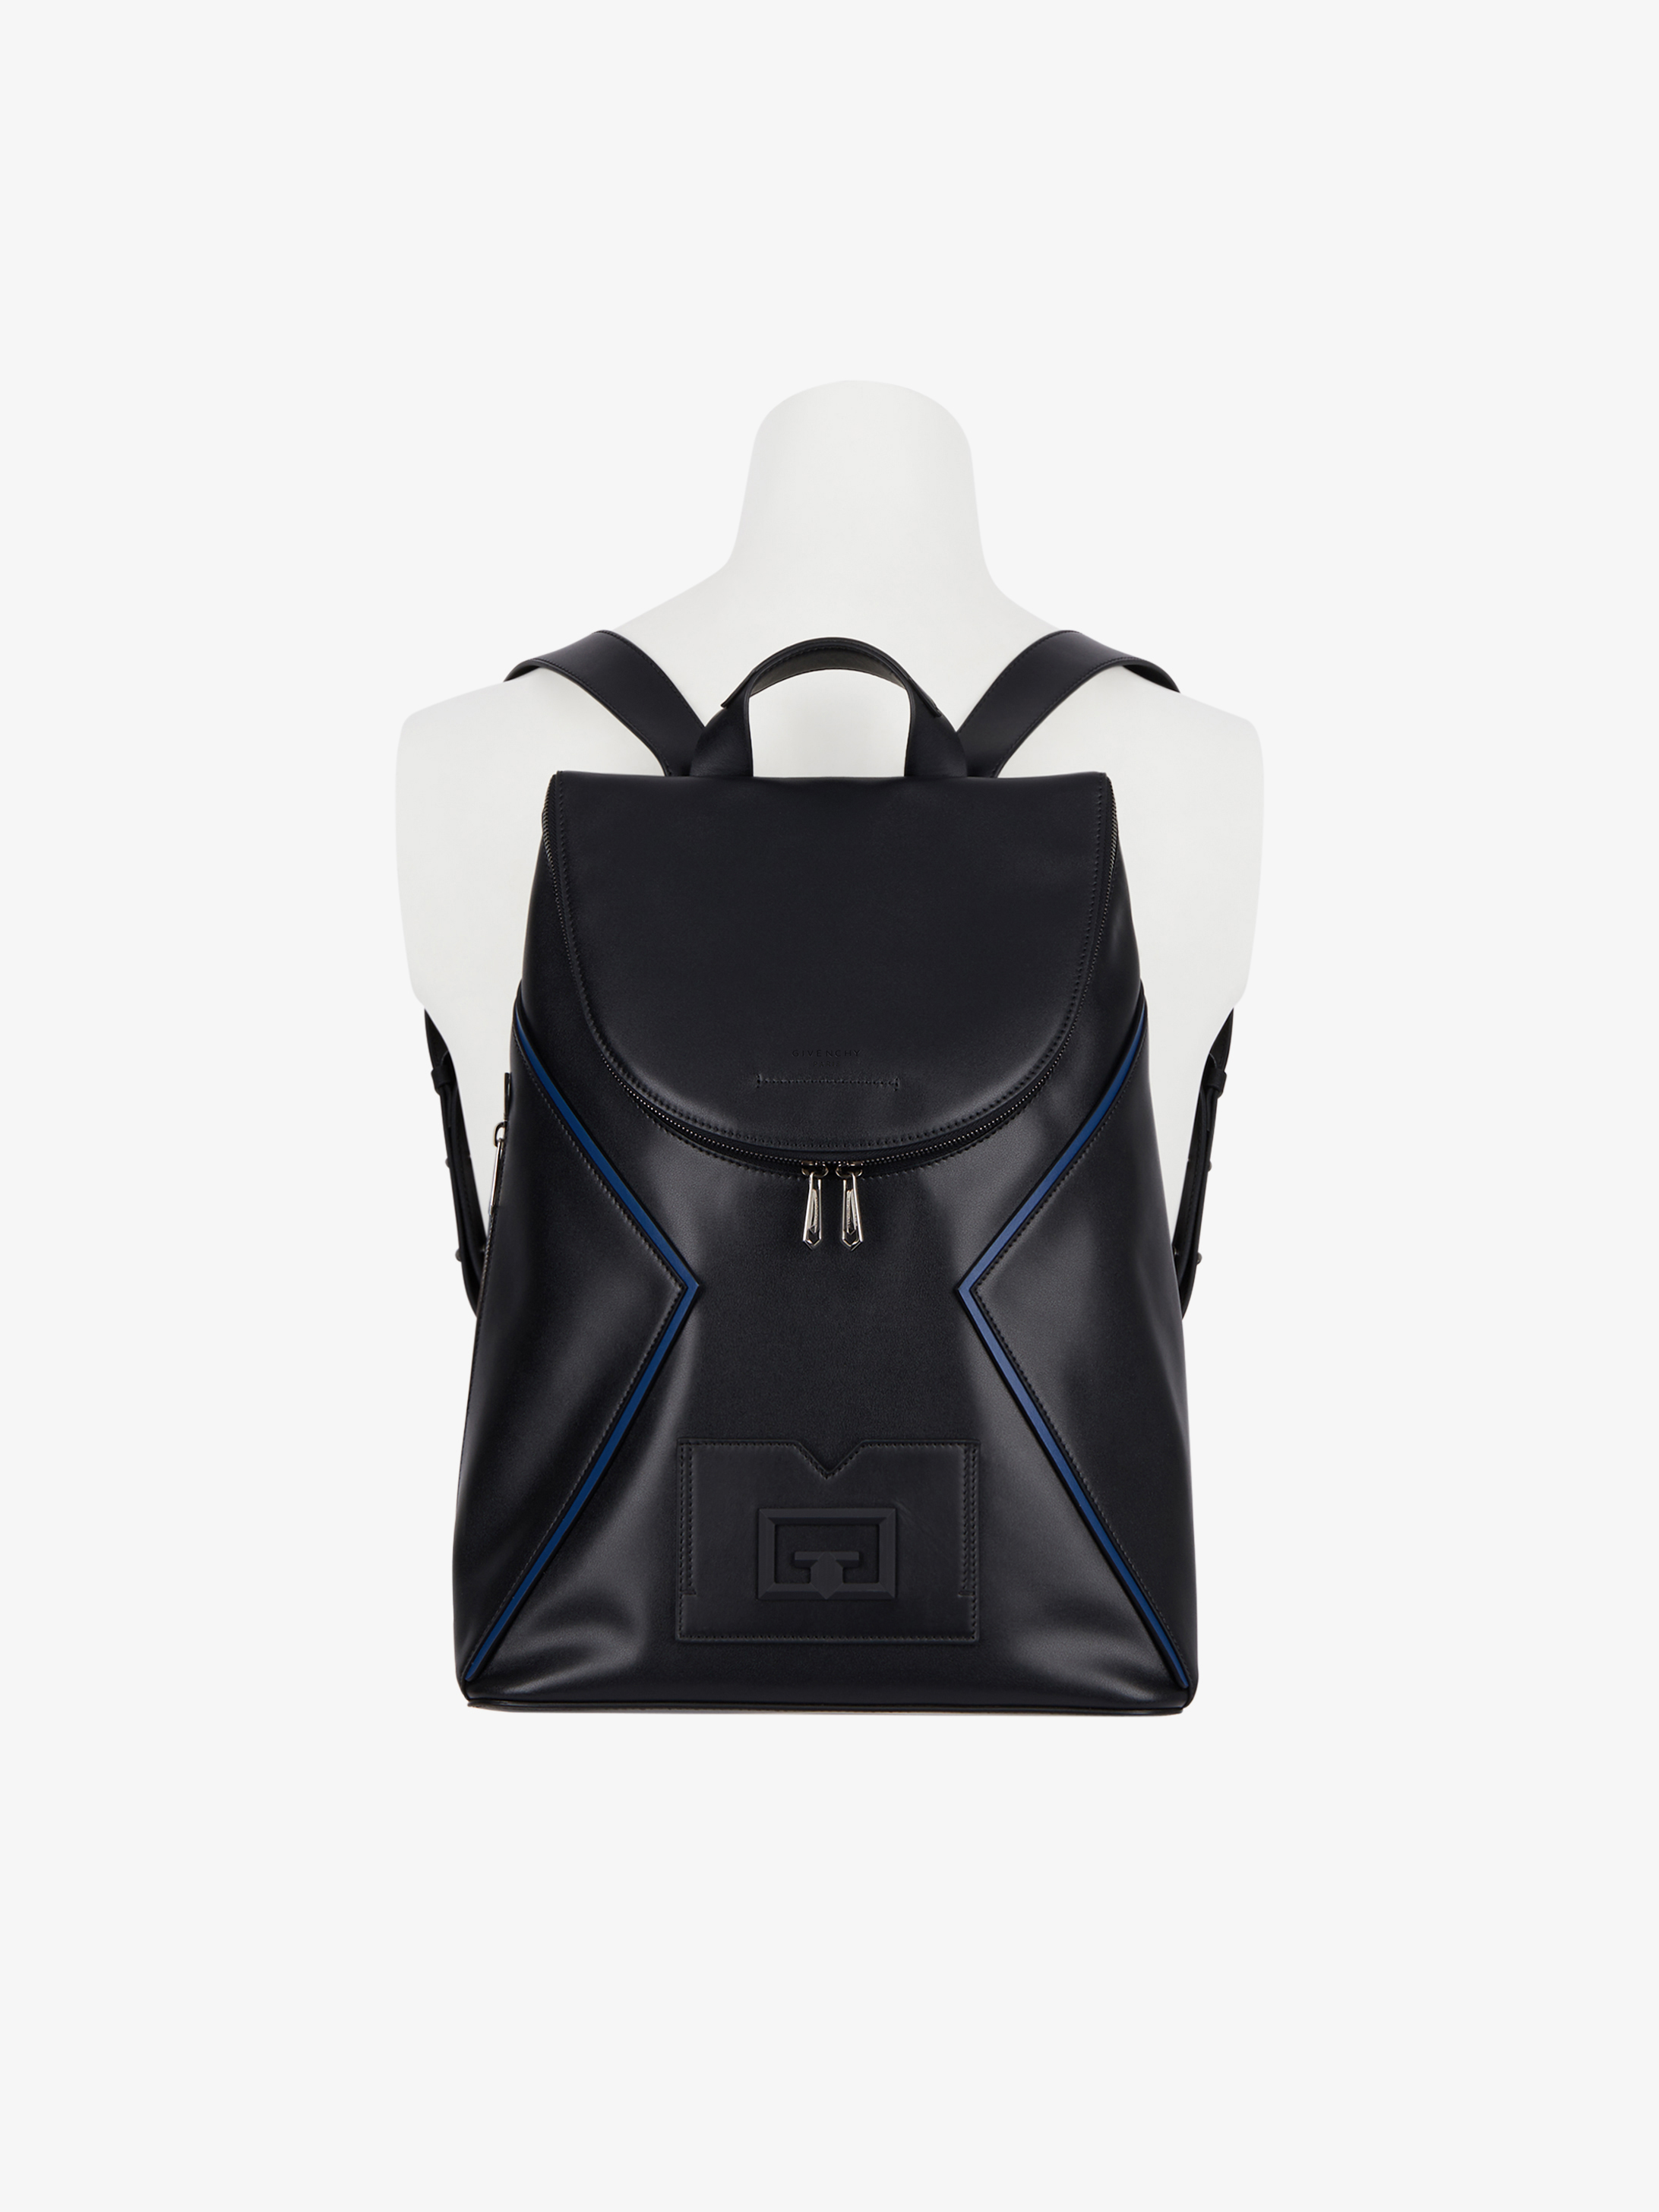 Backpack in leather with contrasting details